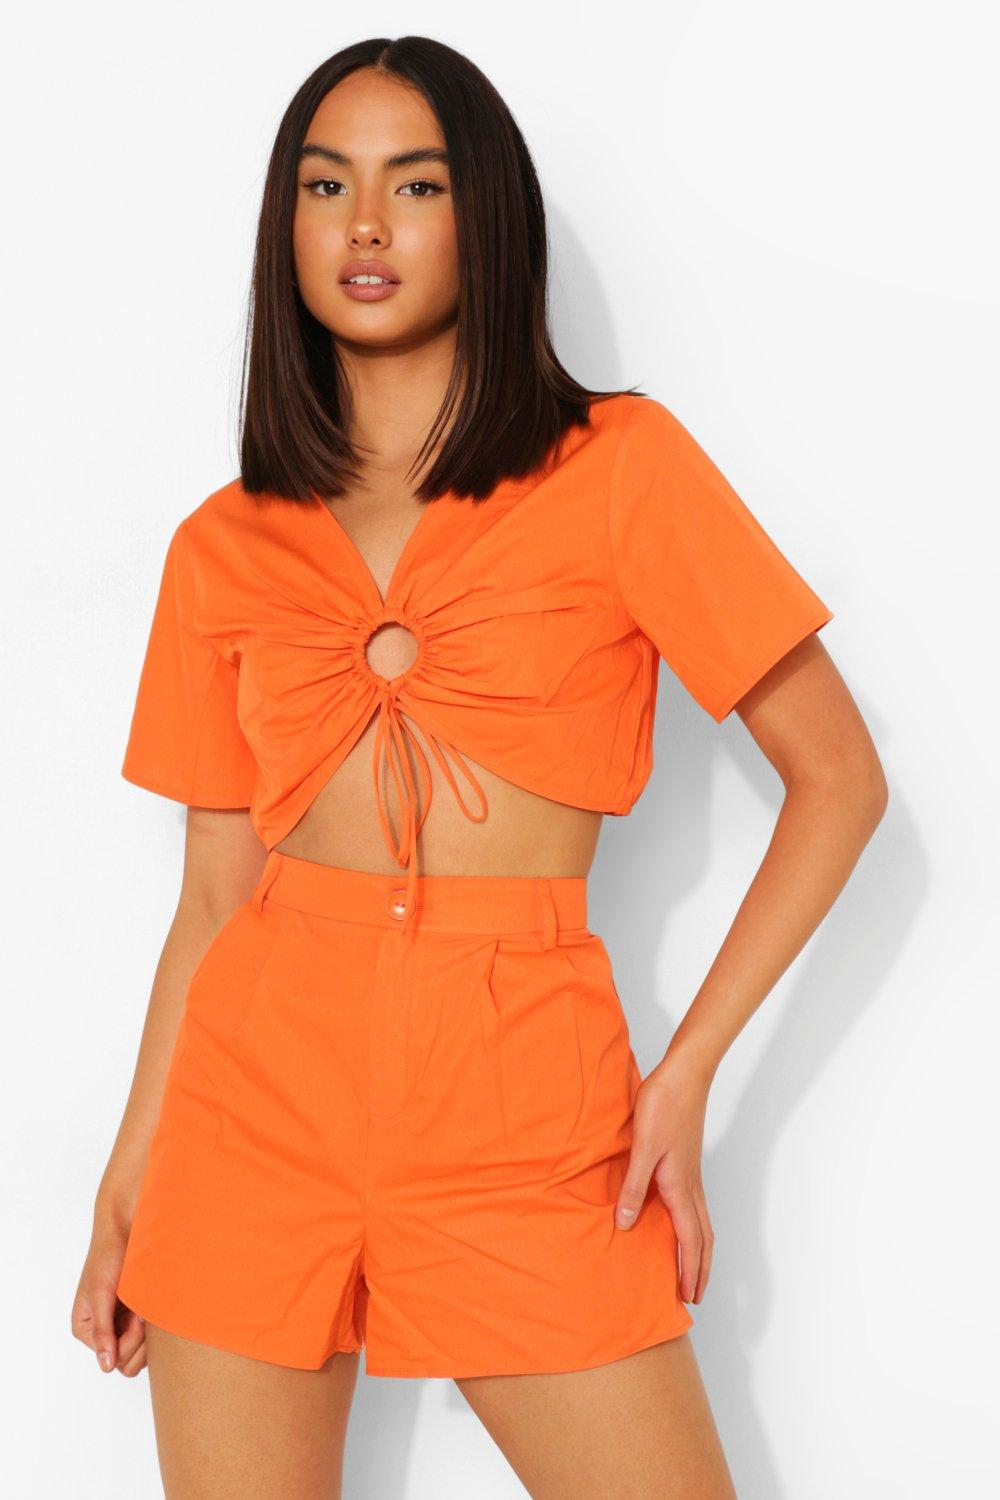 70s Shorts | Denim, High Rise, Athletic Womens Cotton Poplin Rouched Top And Short Co-Ord - Orange - 10 $36.00 AT vintagedancer.com